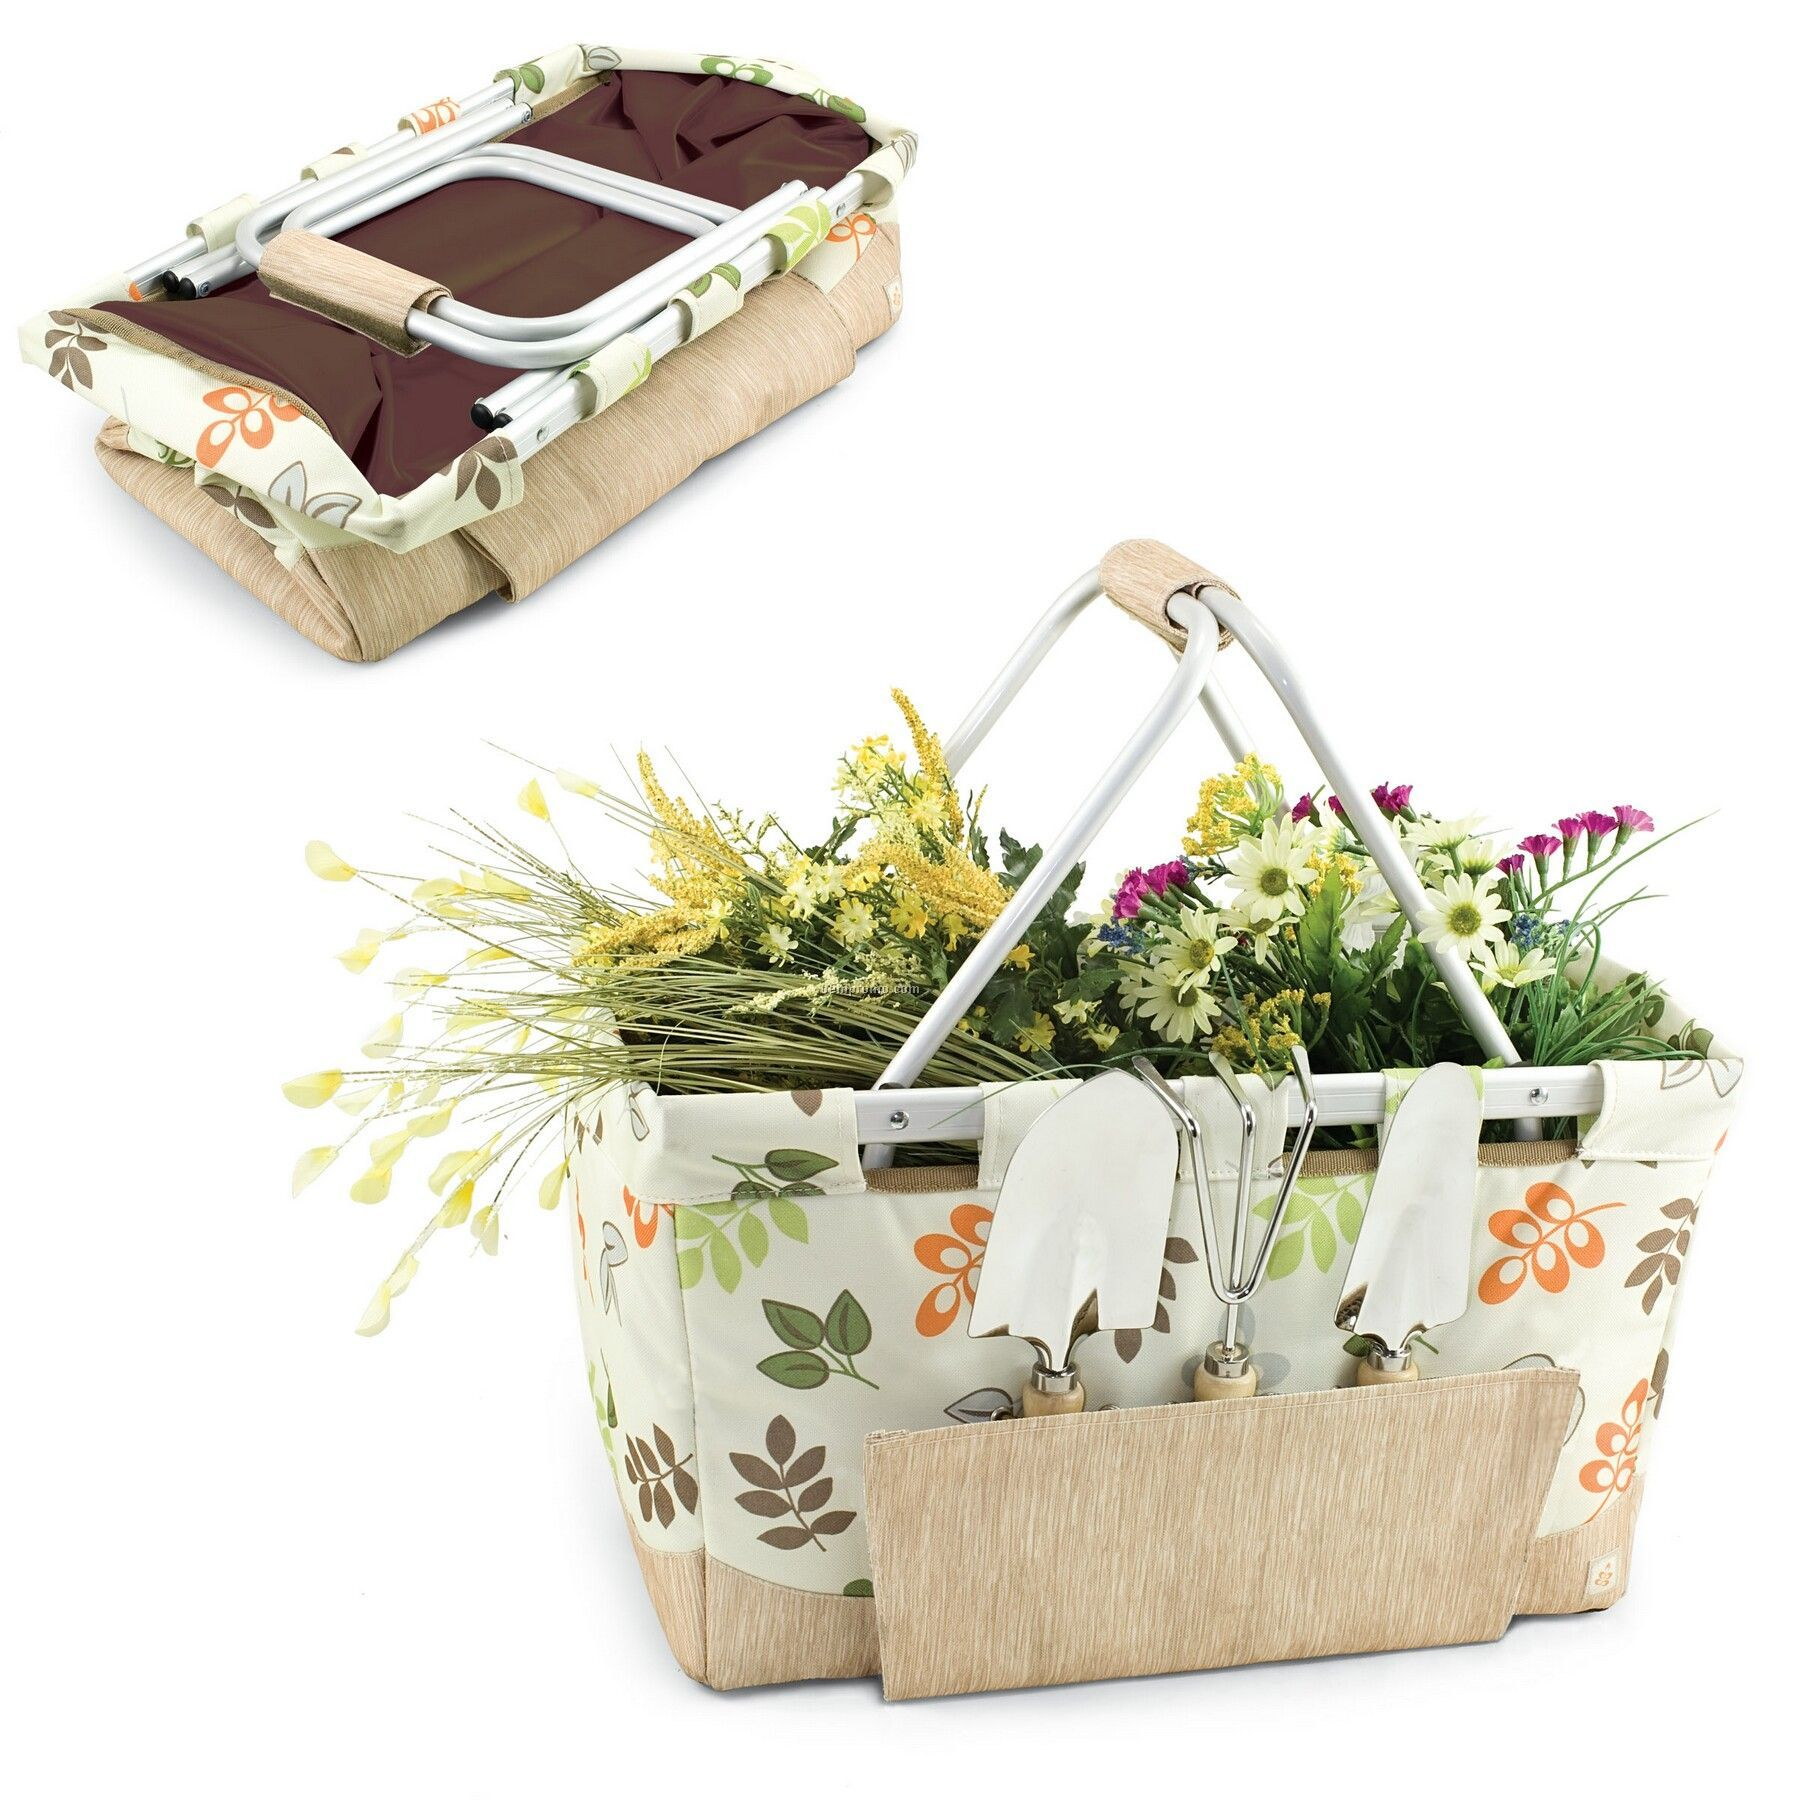 Baskets gift food china wholesale baskets gift food page 78 for Gardening tools gift basket